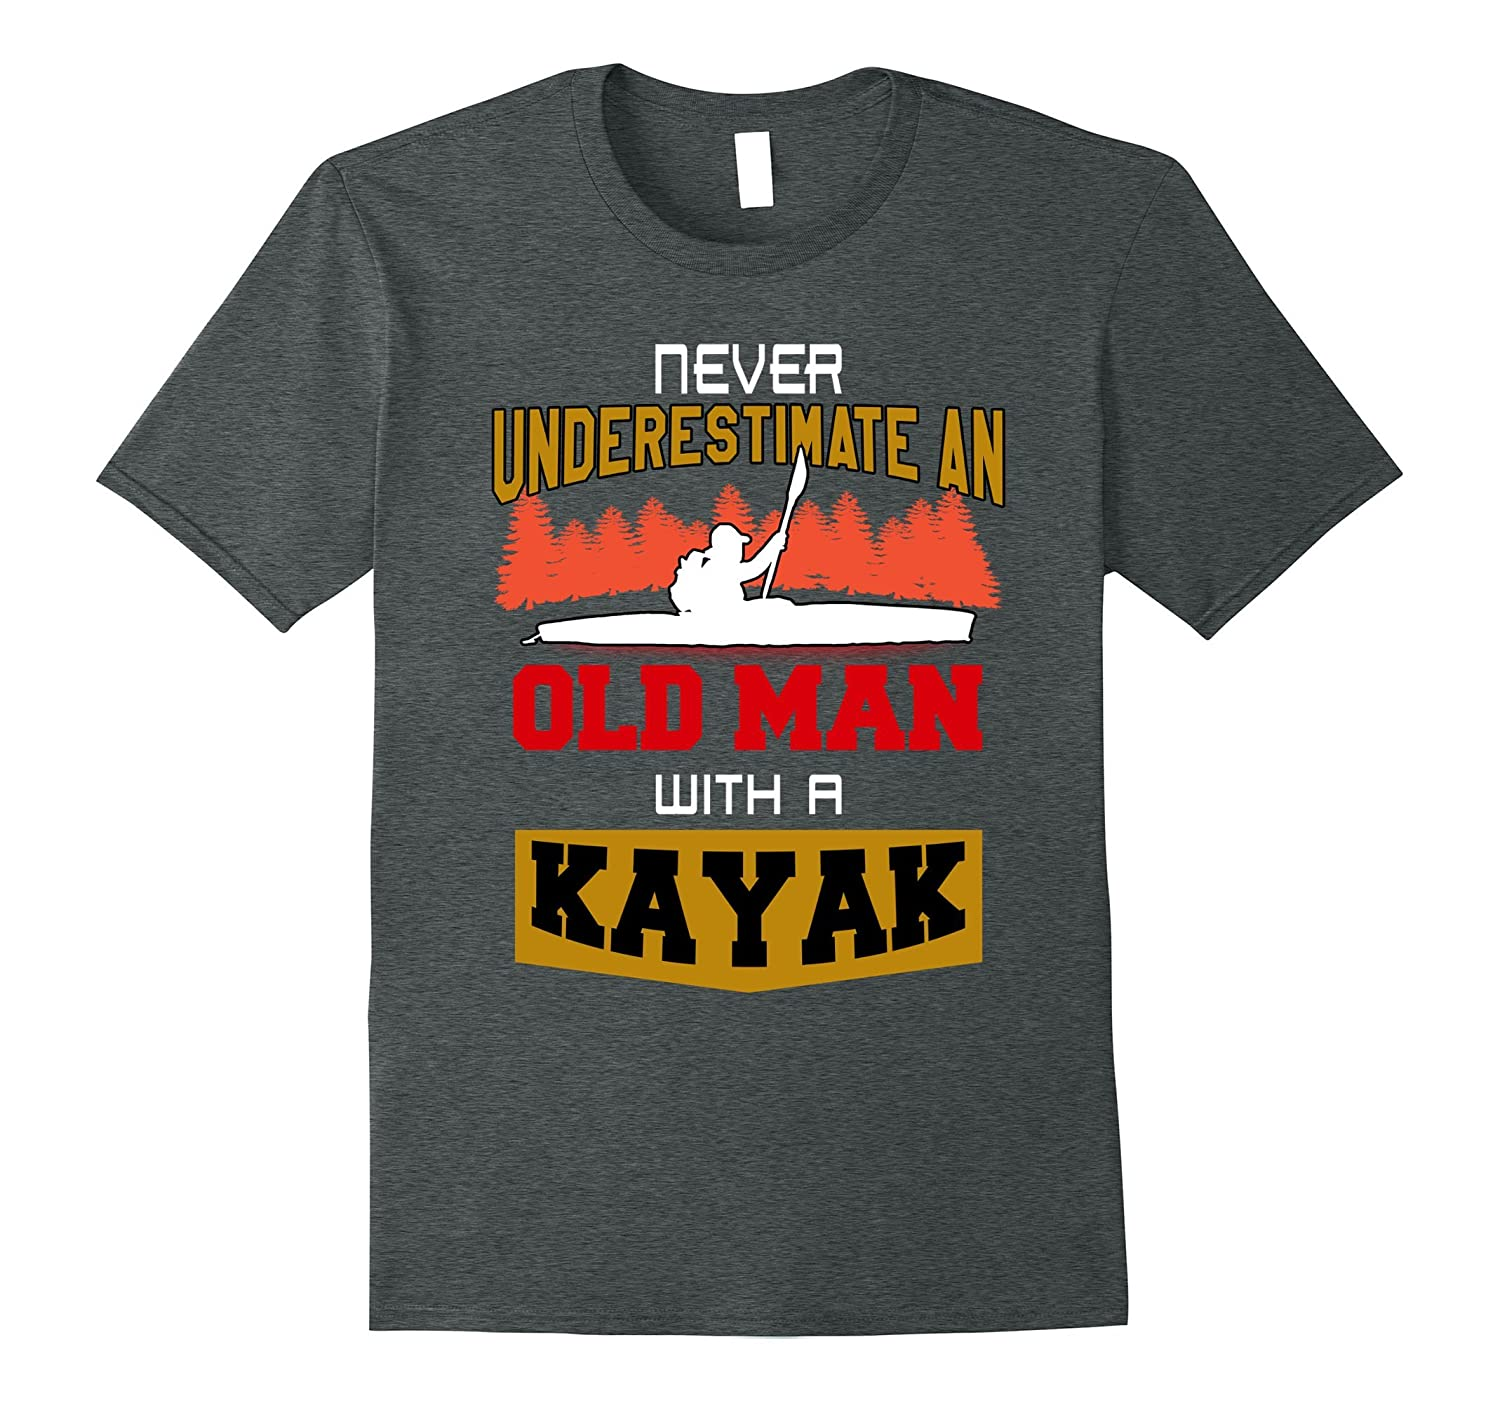 Never Underestimate an old man with a kayak T-shirt